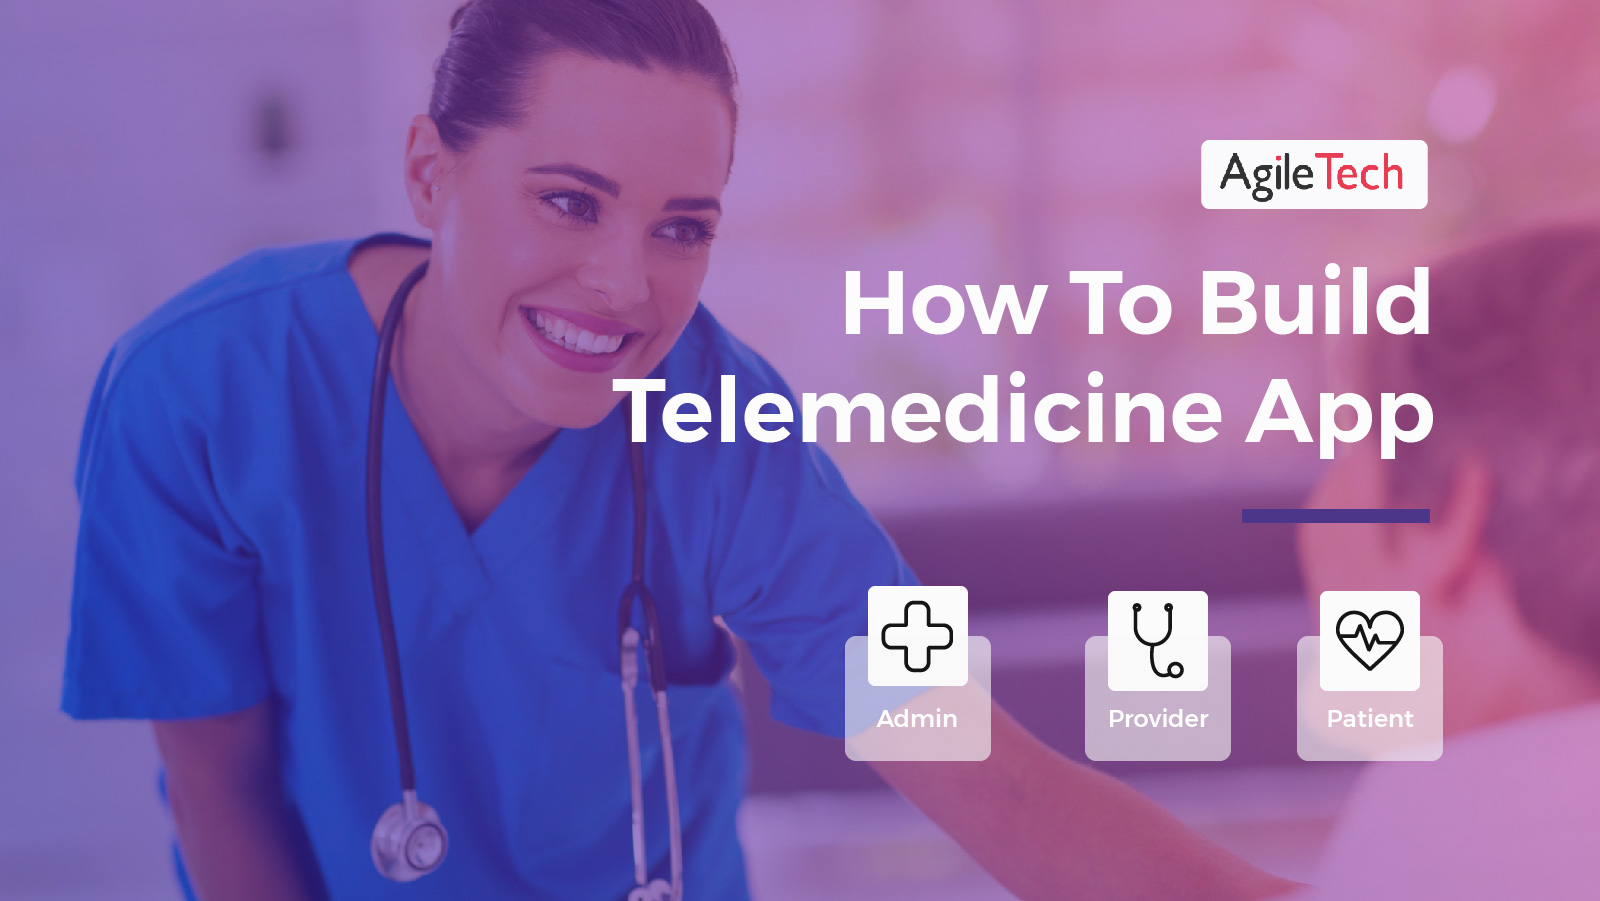 telemedicine app how to build doctor on demand app for healthcare agiletech